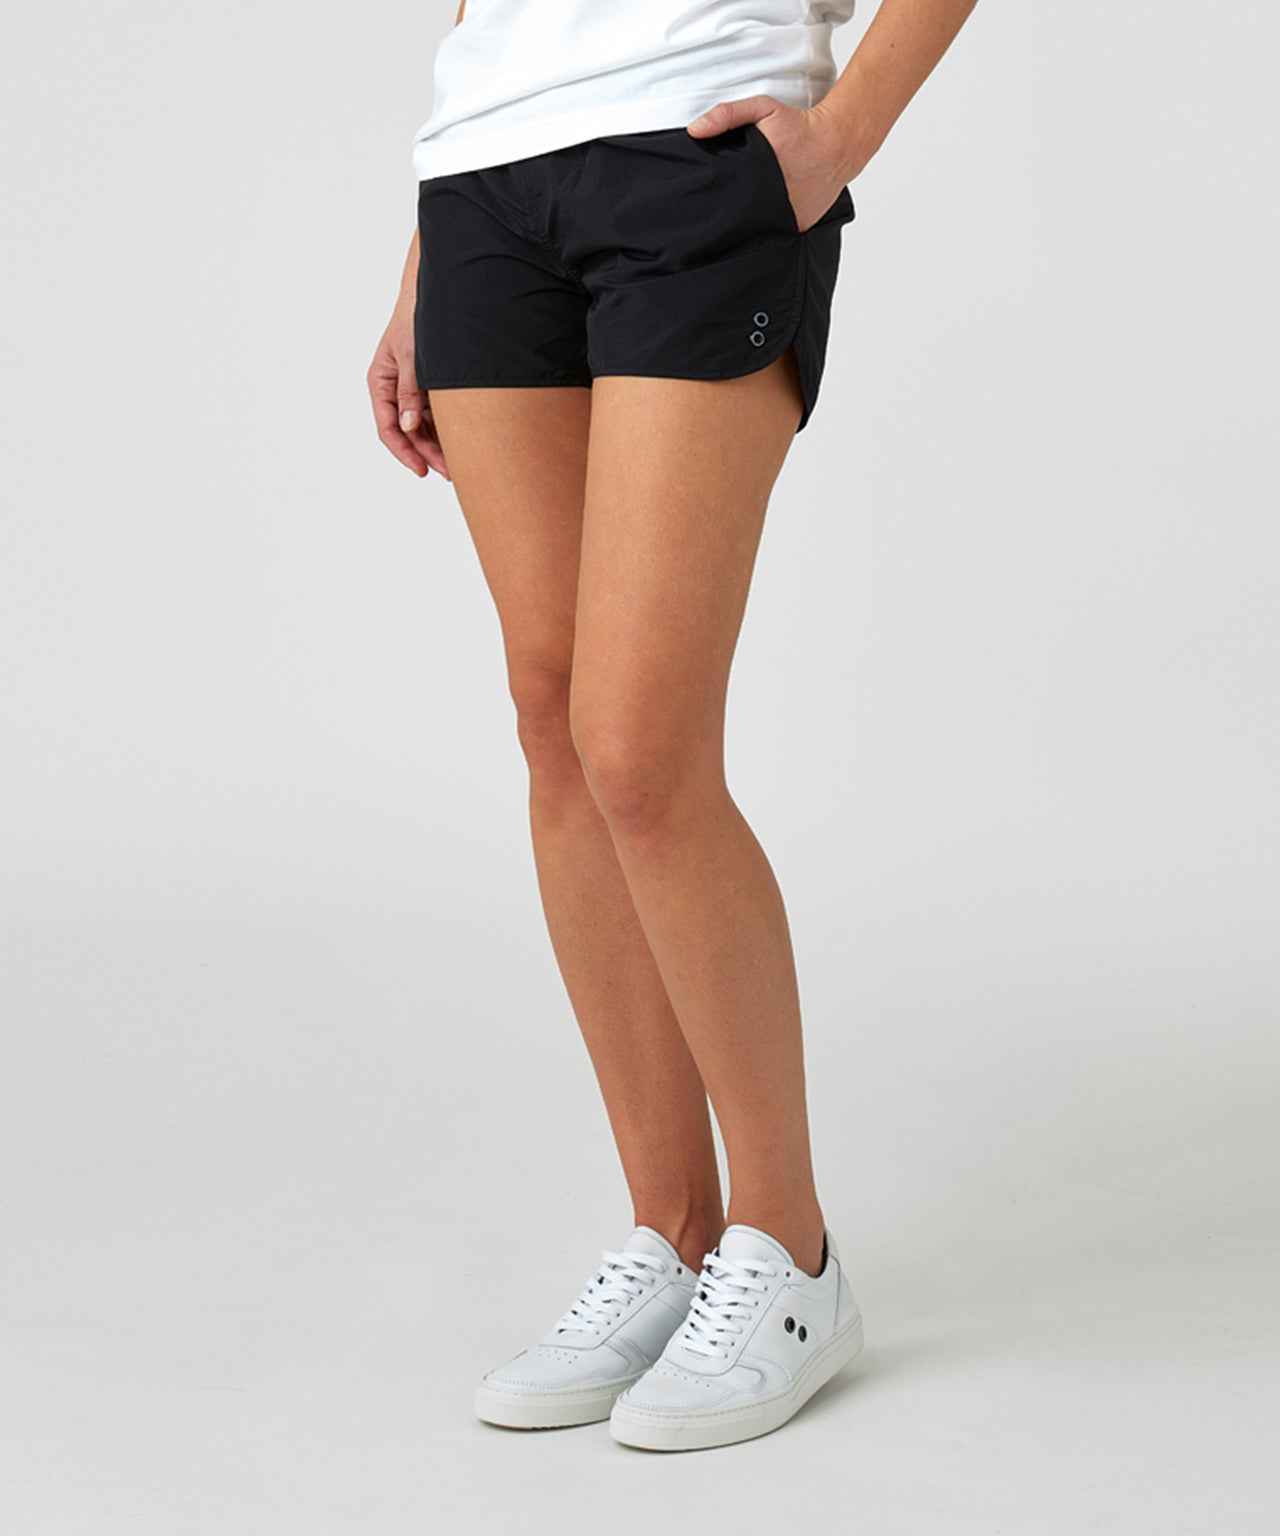 Marathon Shorts His For Her - black